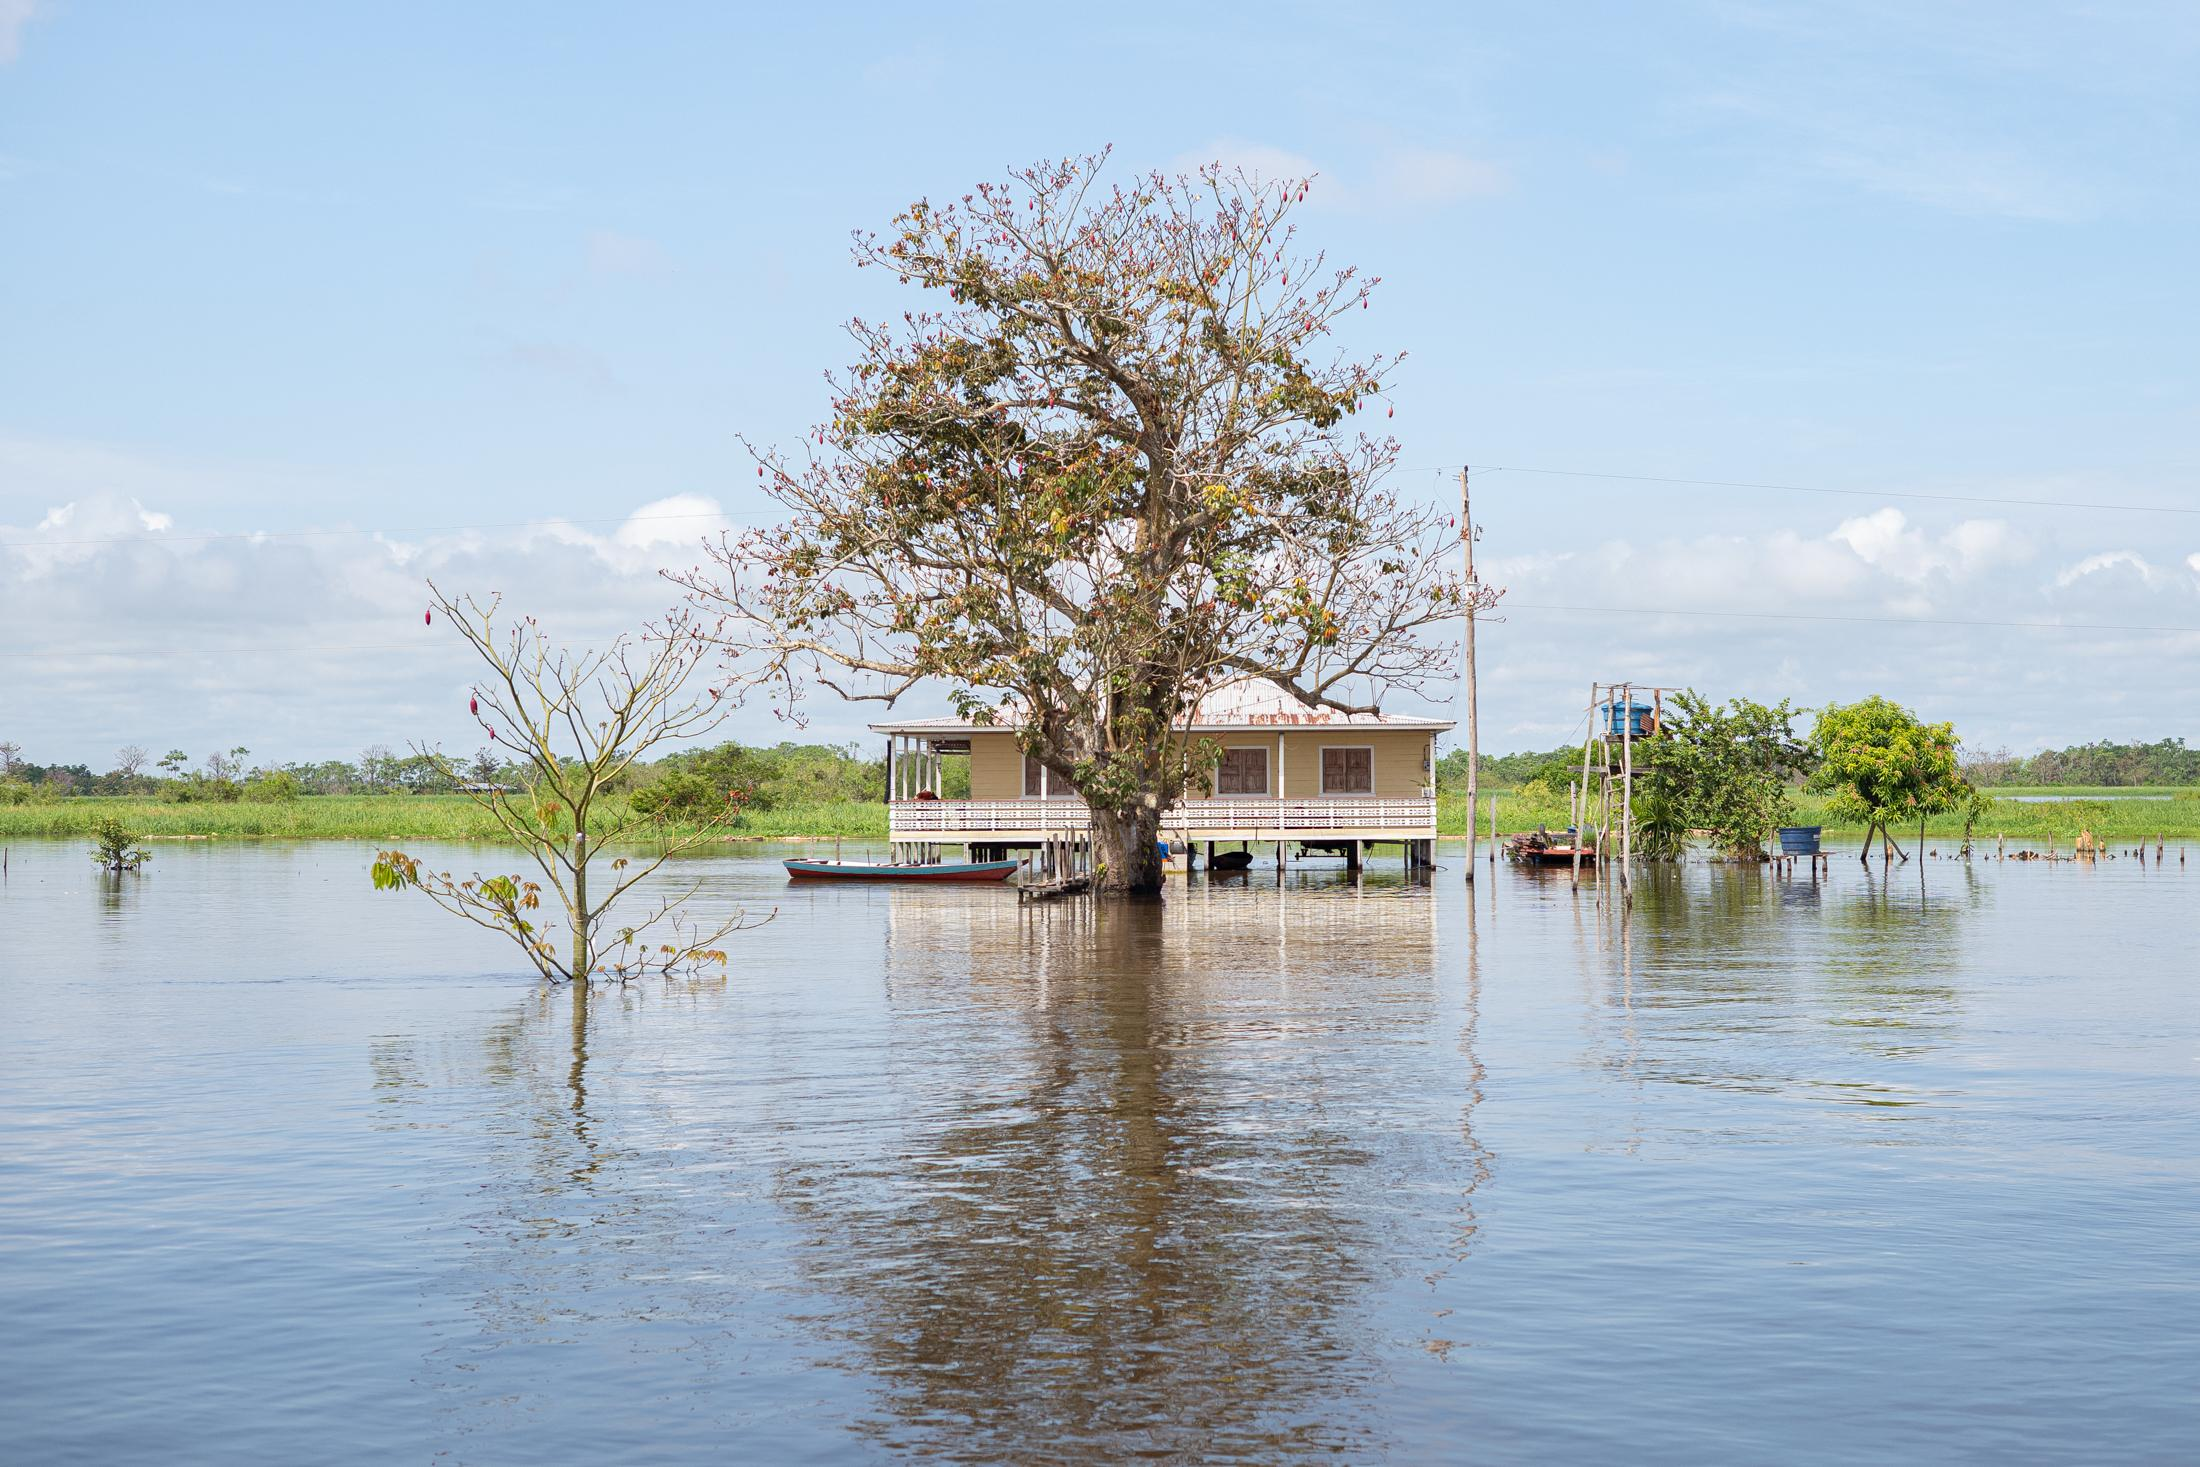 """The first flood happened in 2009. And since then, every year the city is covered with water. Anamã is now known as the """"Venice of the Amazon""""."""